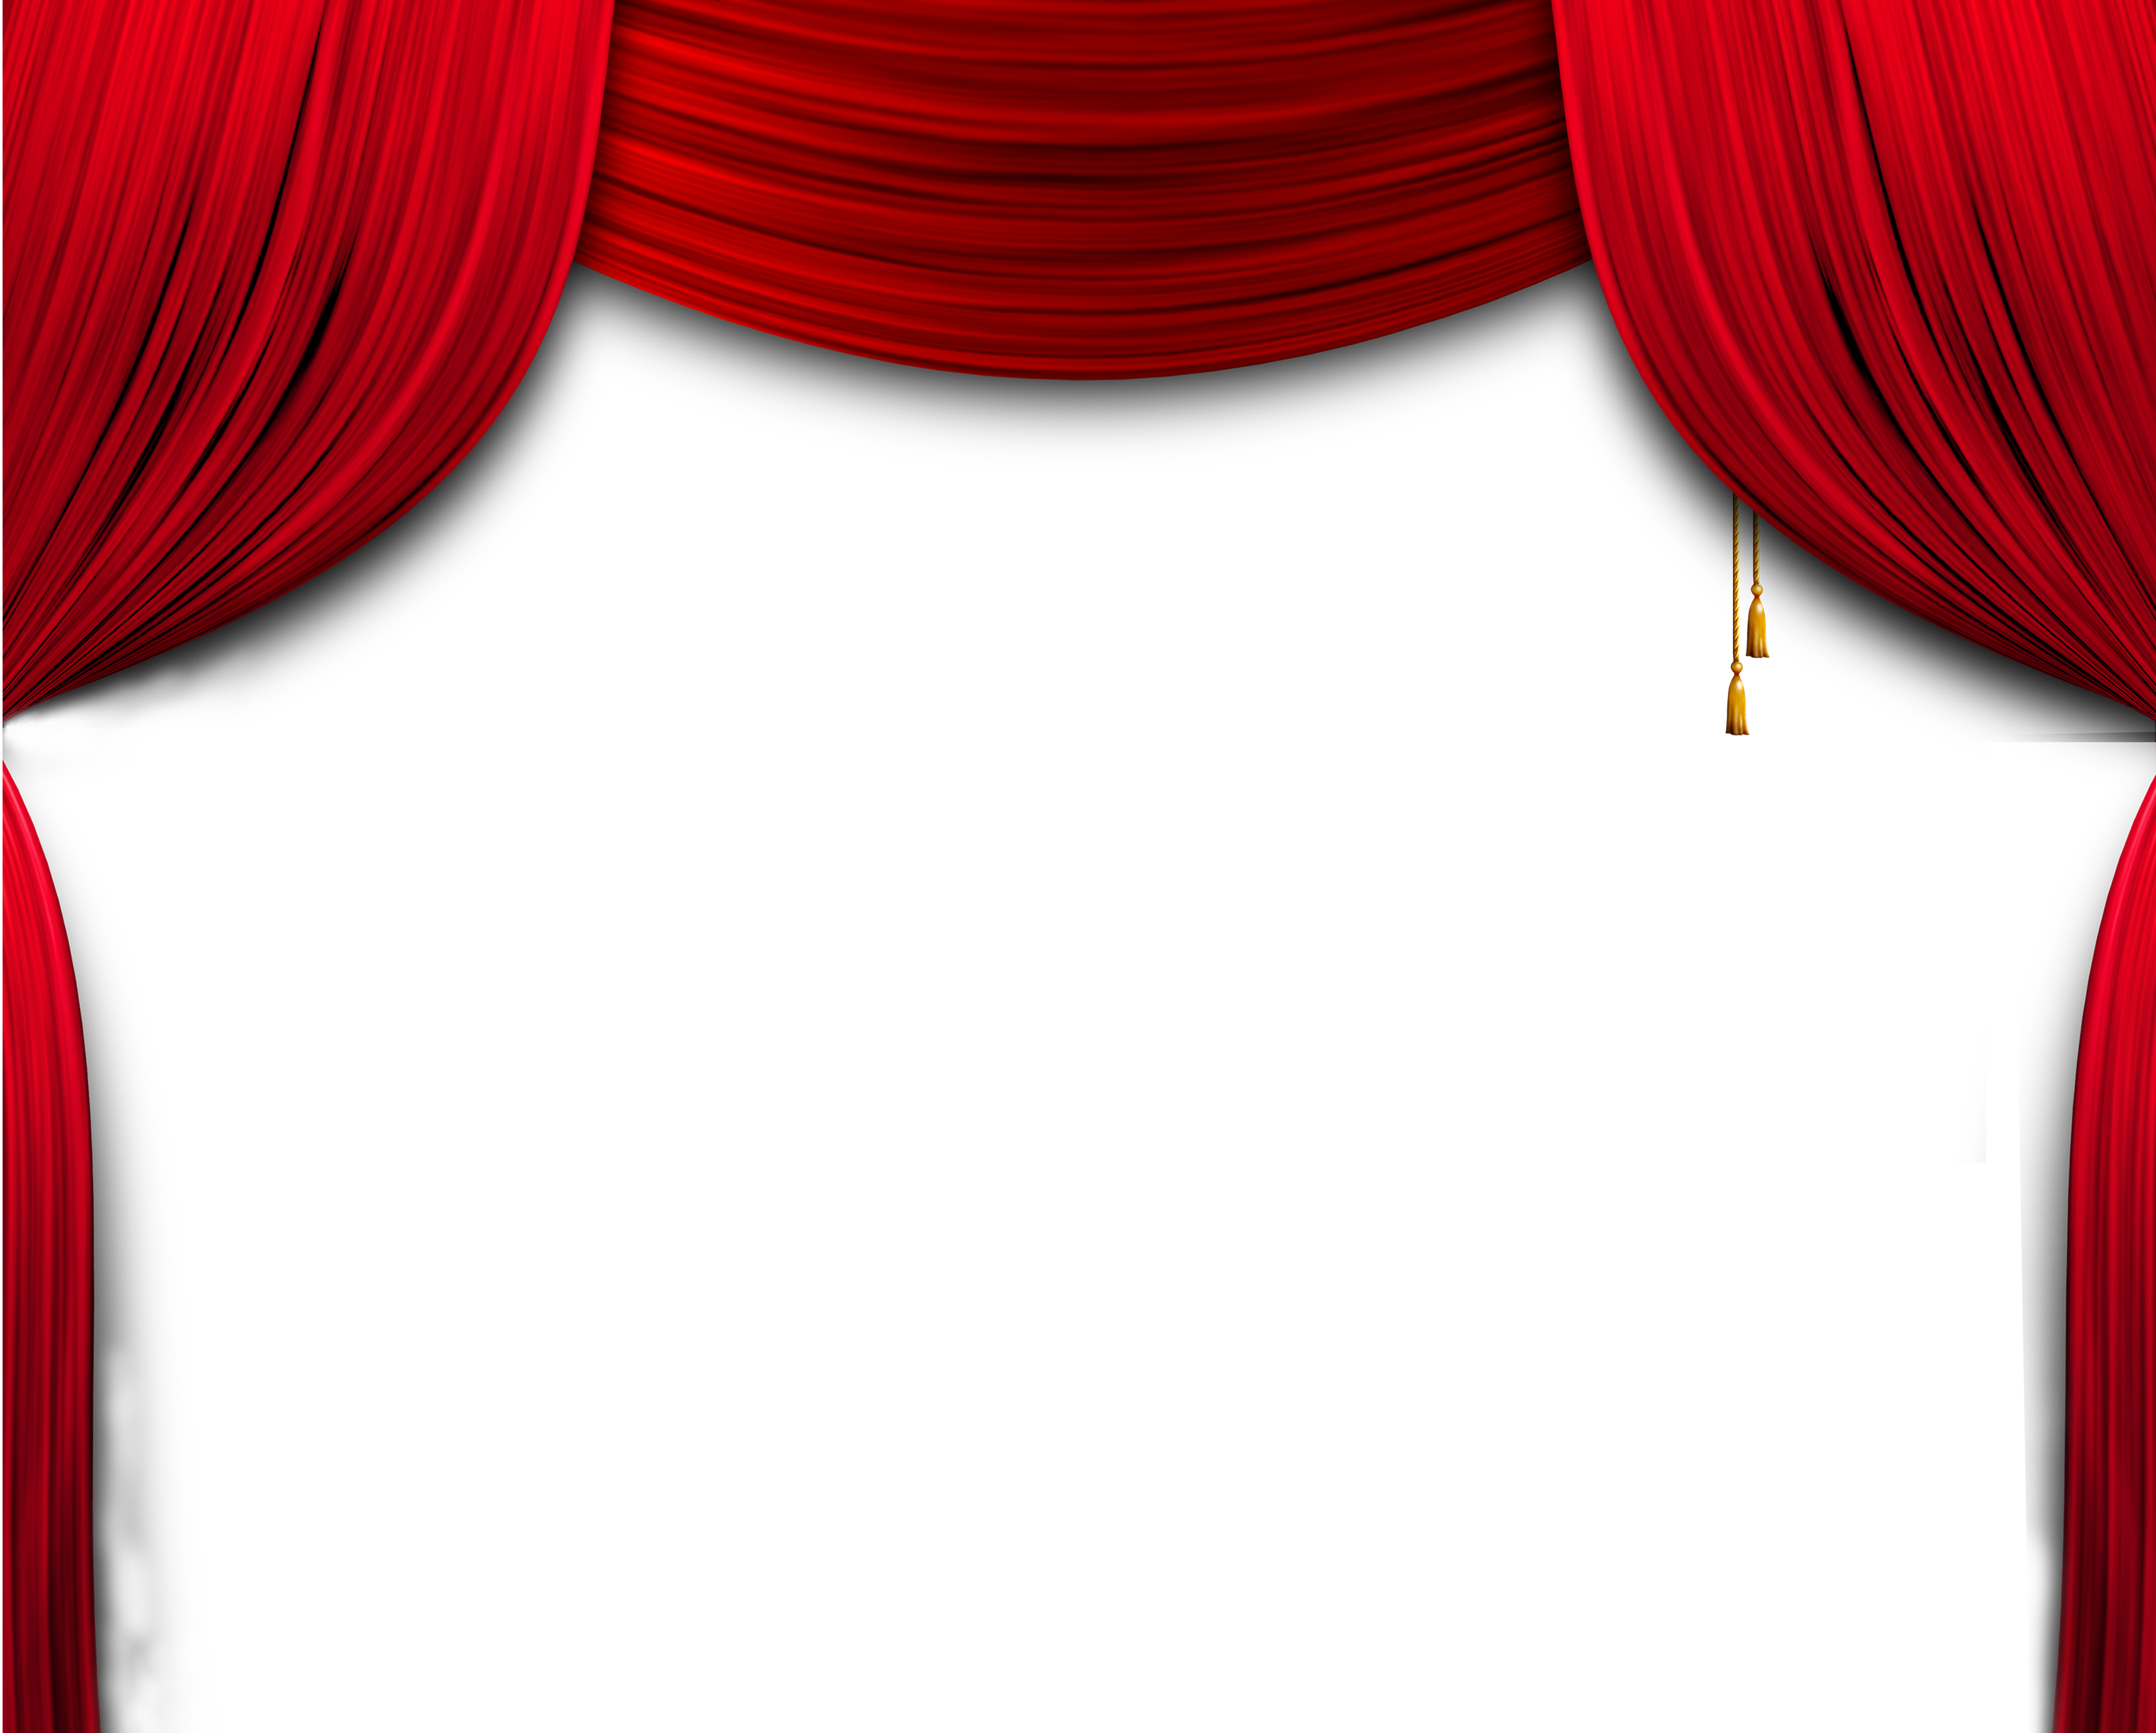 Red stage curtains png. Curtain textile pattern transprent